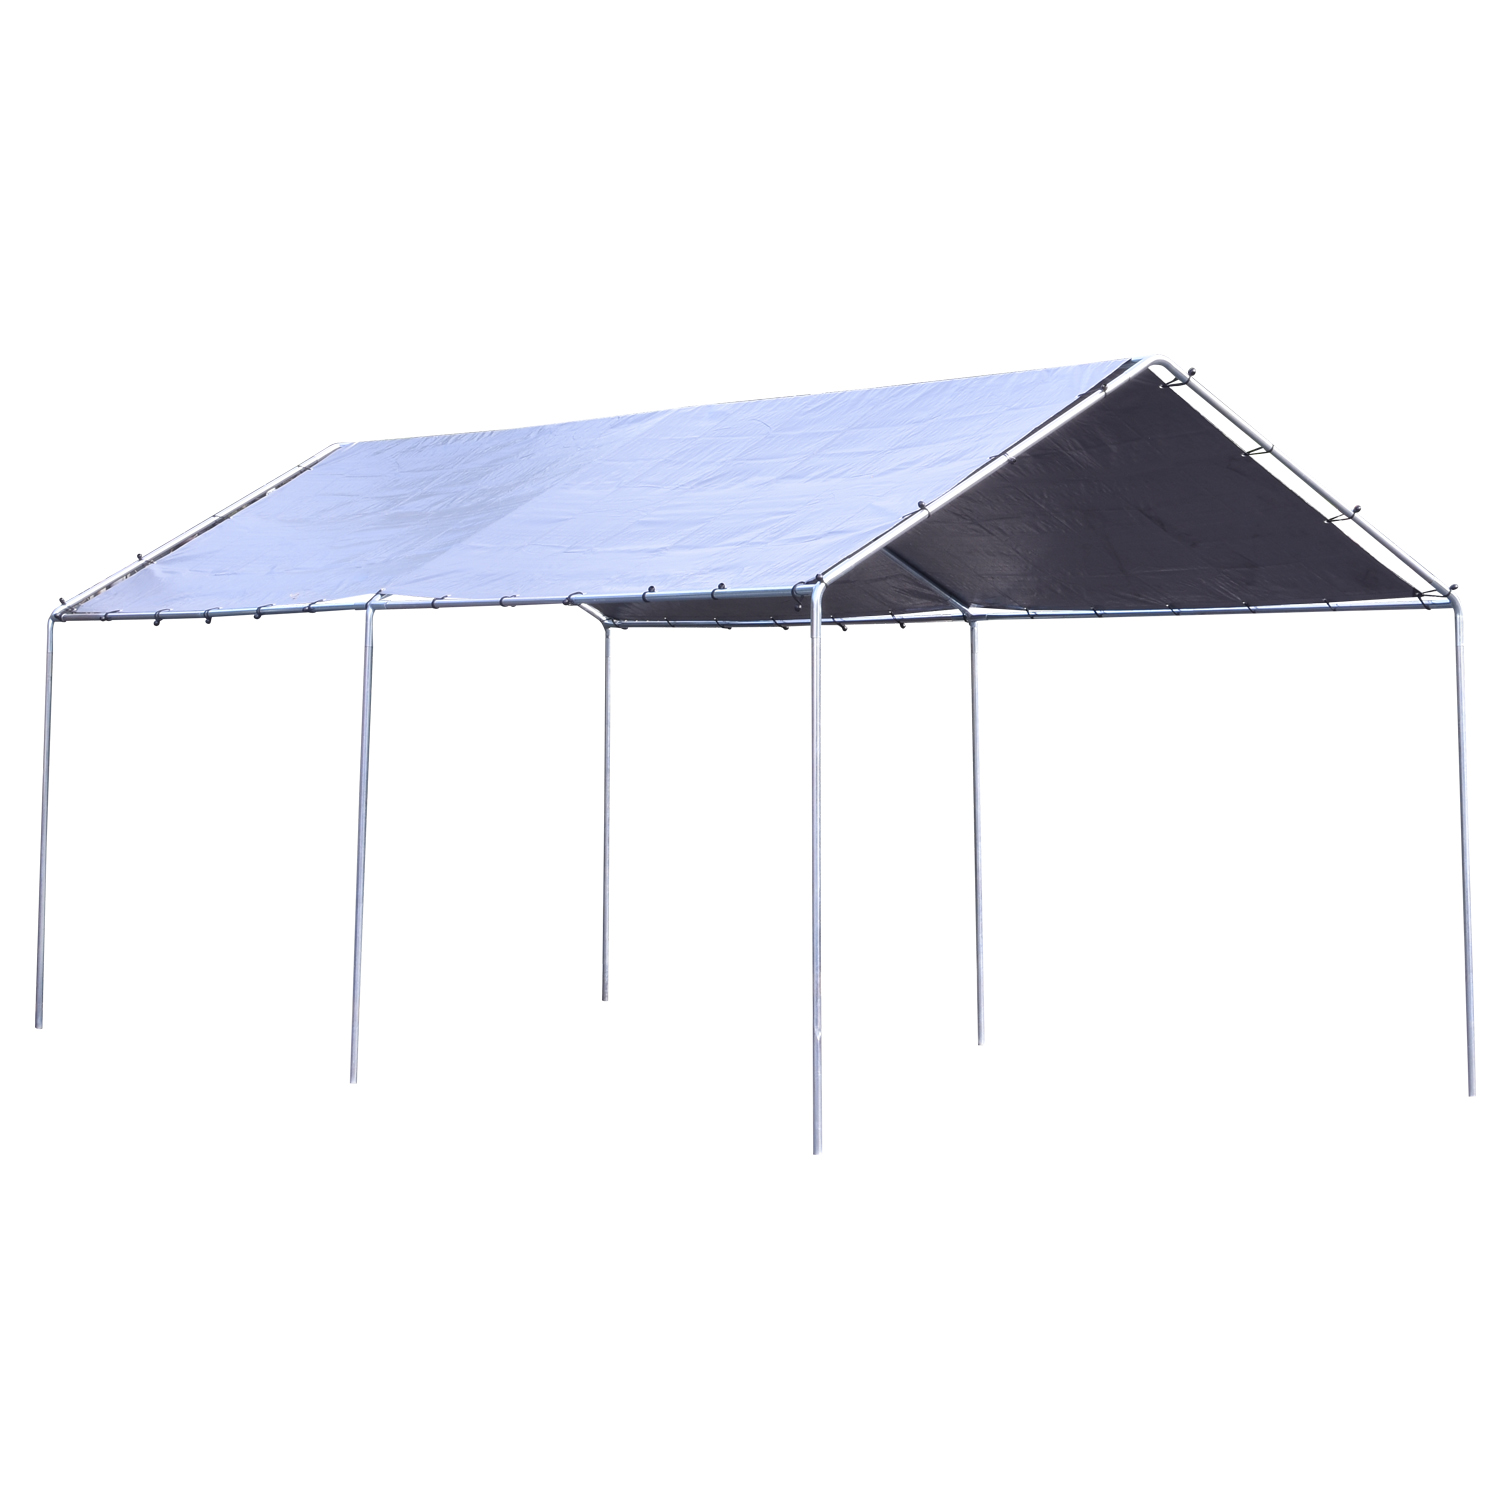 Hiltex Heavy Duty All Purpose Canopy 12' ft. X 20' ft. 2 Section Car Port Flea Market by